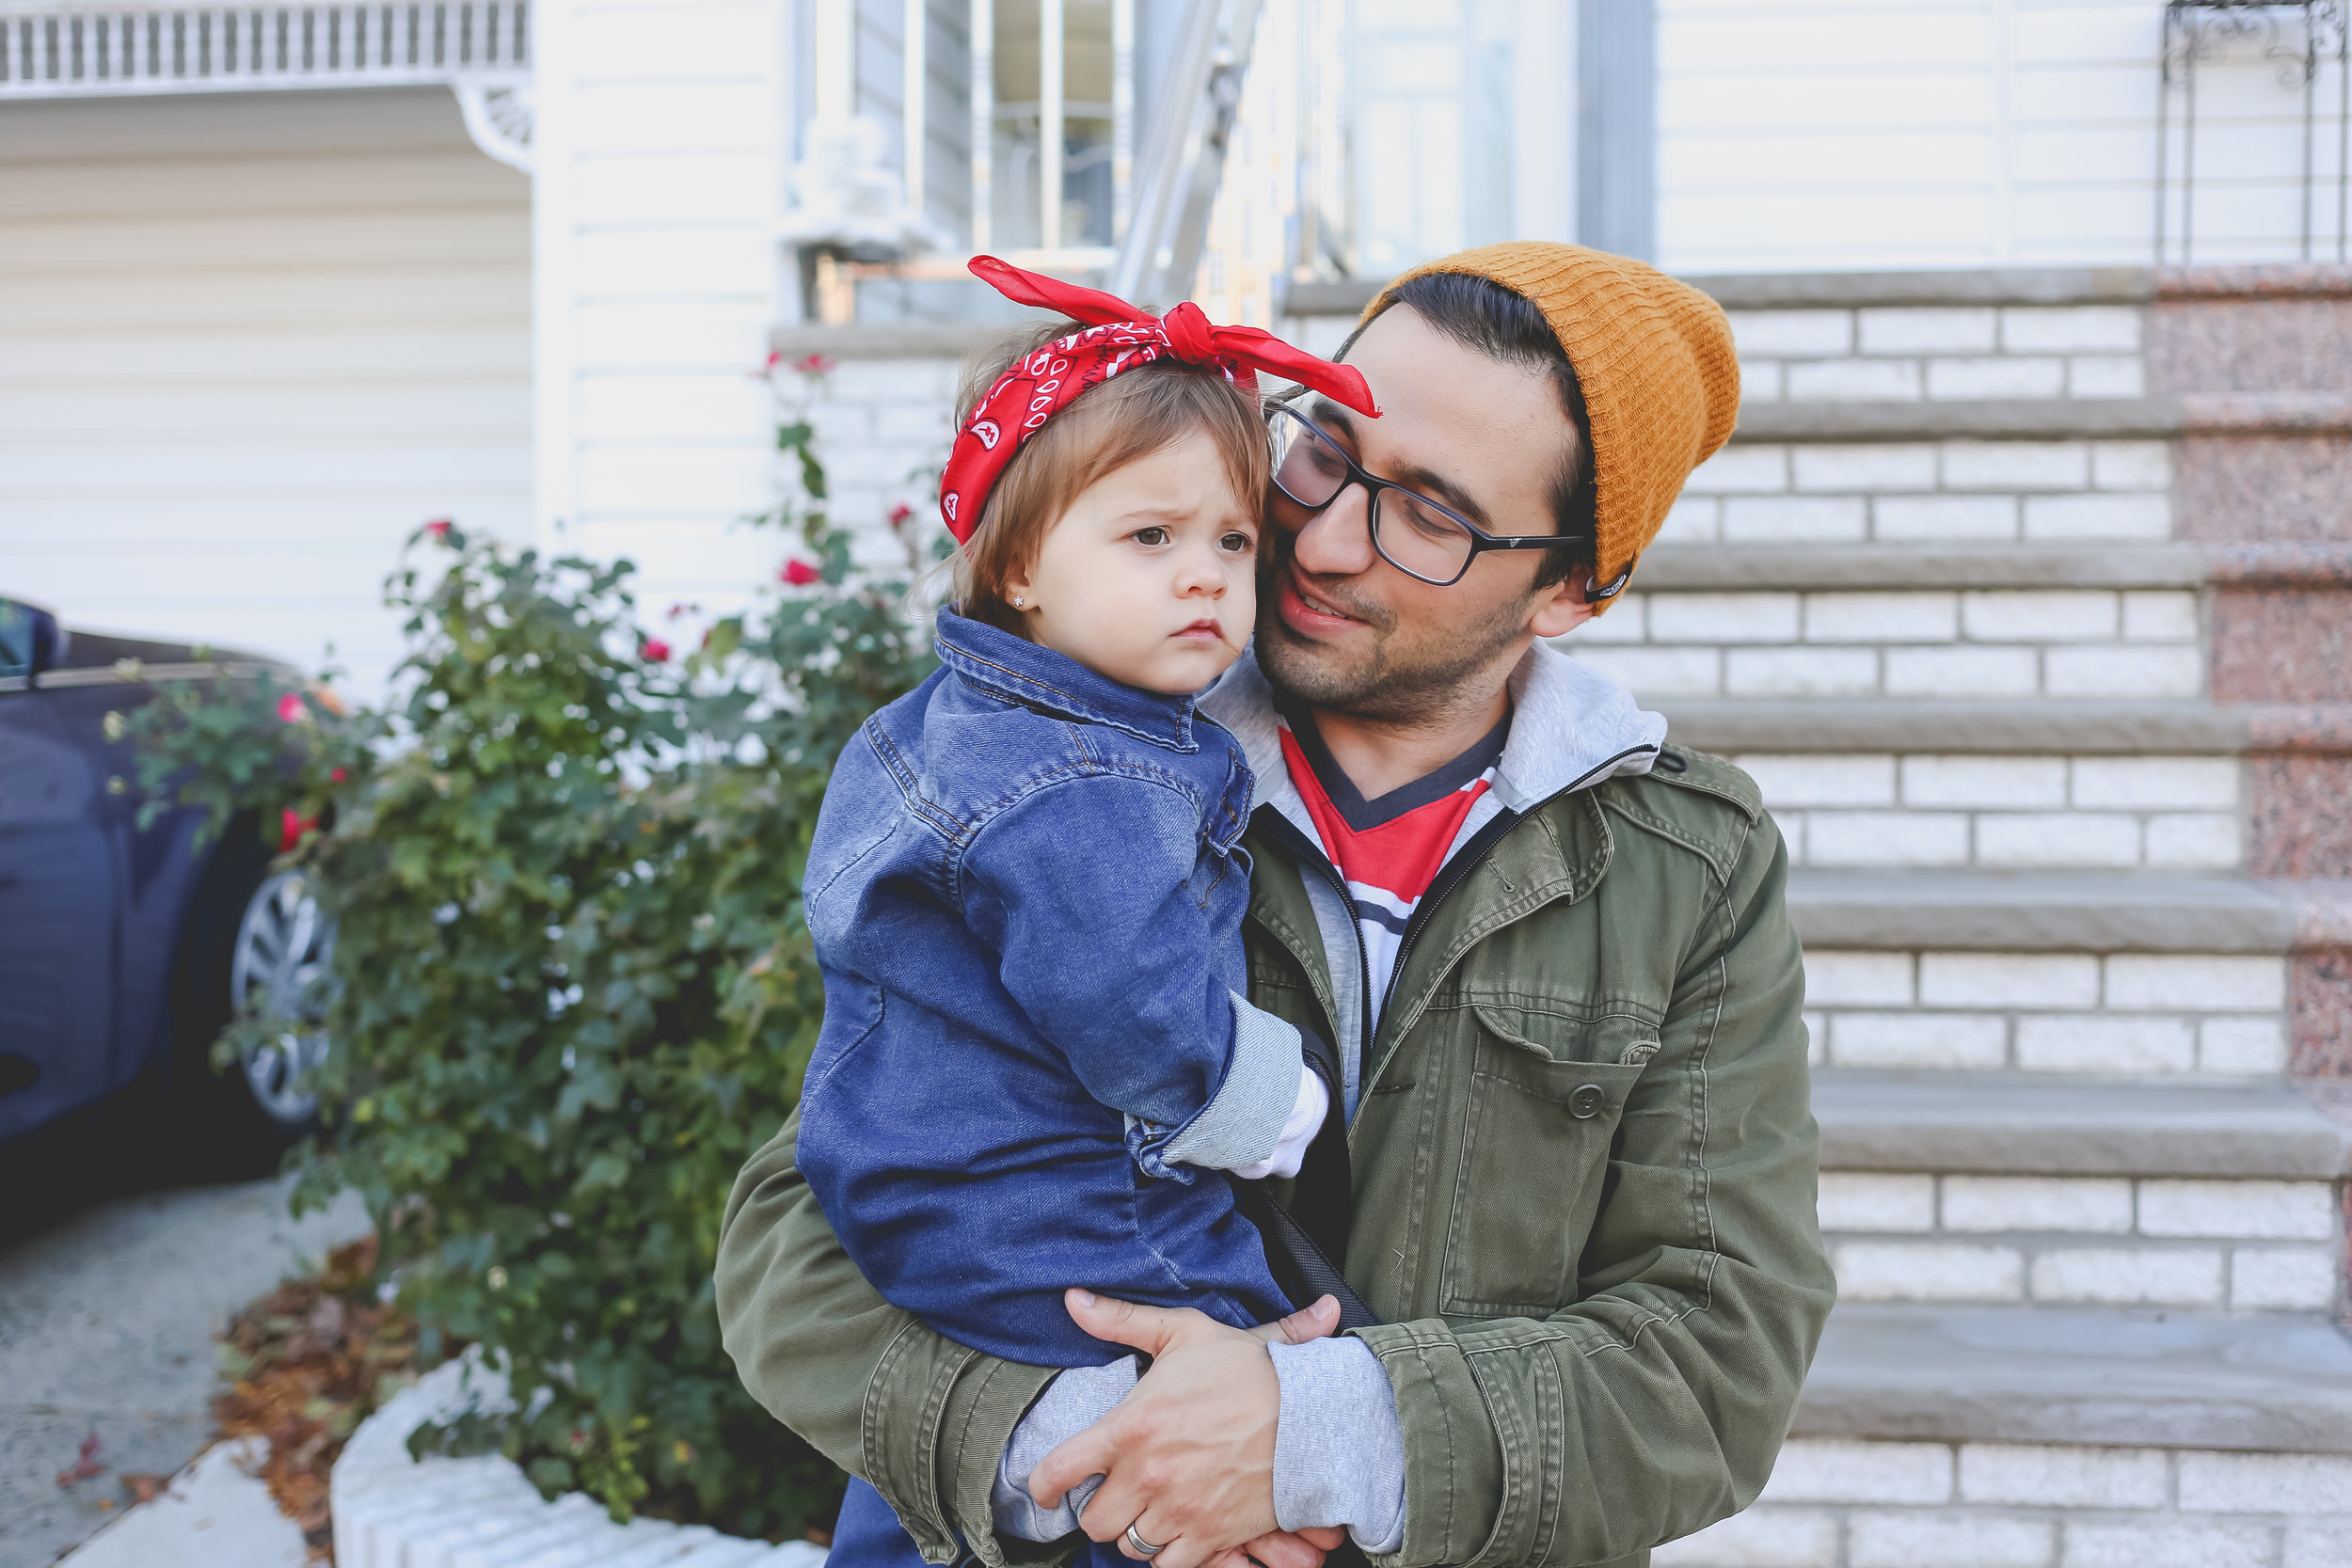 Father with his toddler daughter, dressed as Rosie the Riveter on Halloween.